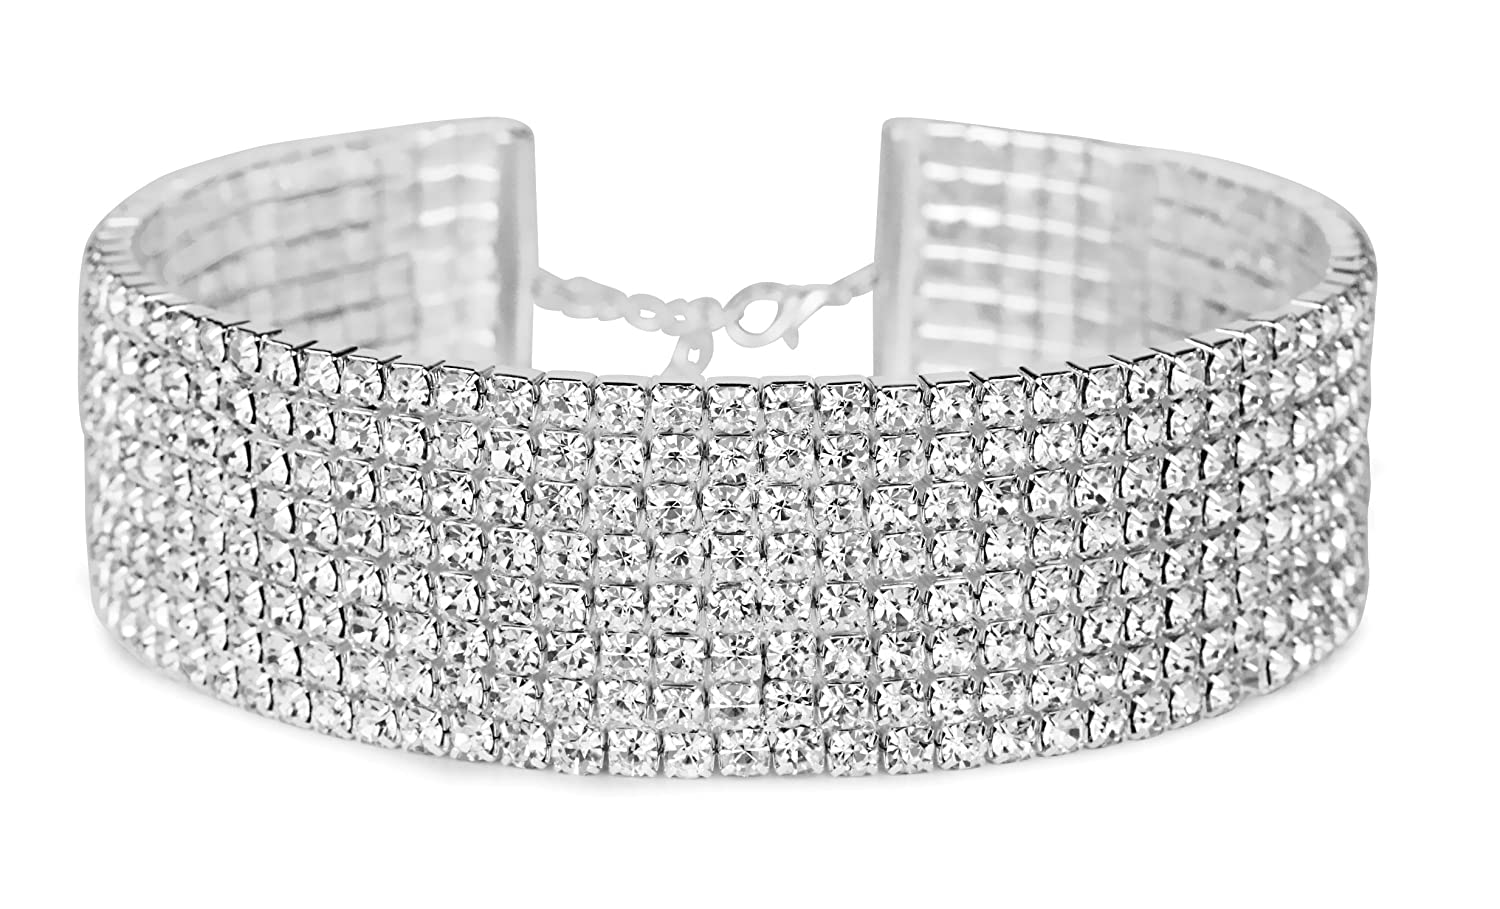 """Rhinestone Choker 3 5 8 Row Silver by LuxeLife – Women's Crystal Necklace Diamond Collar with 5"""" Extender"""